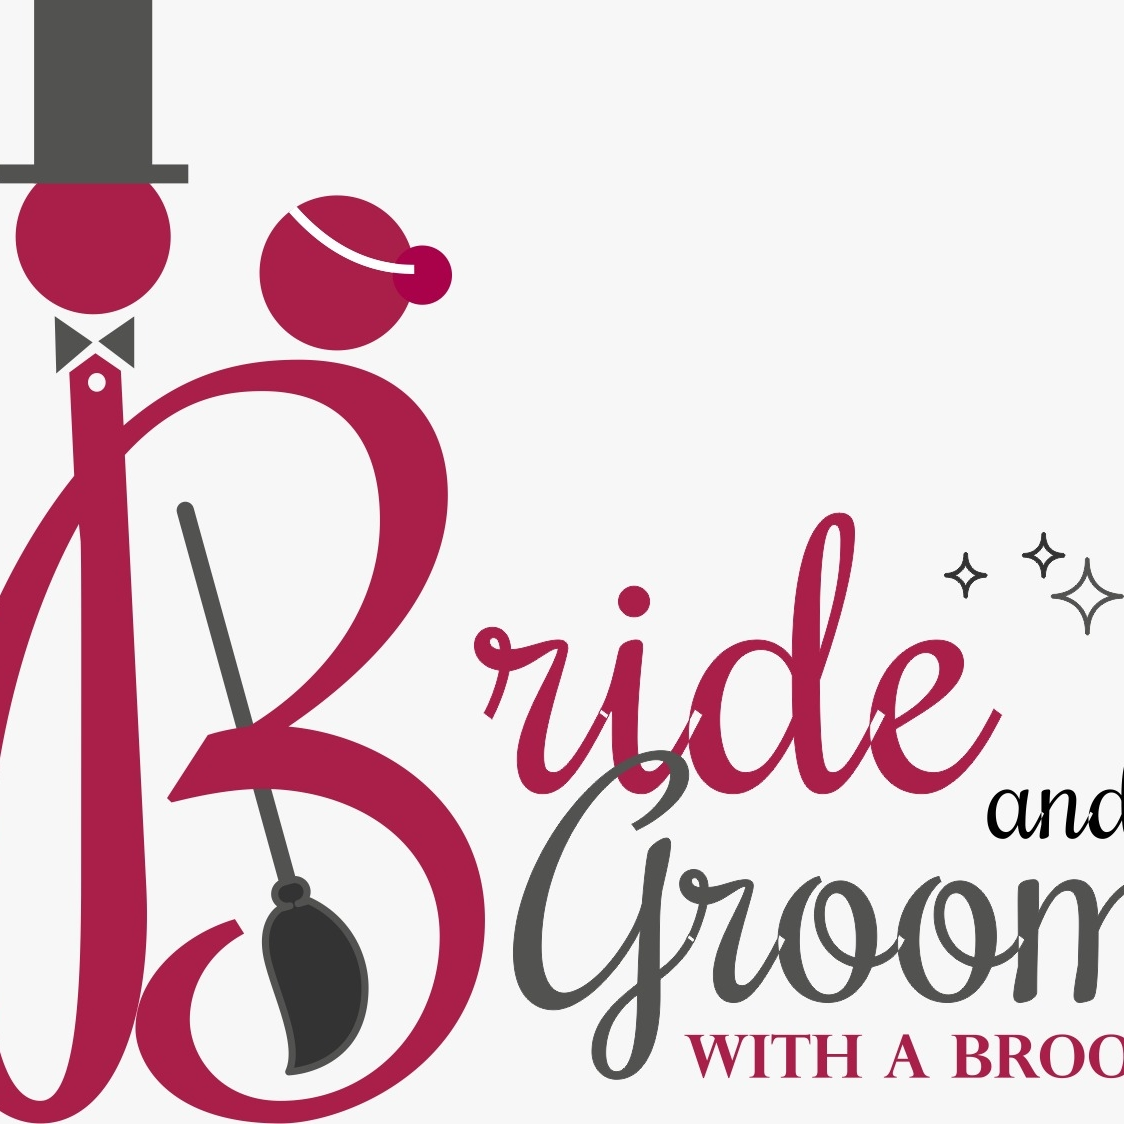 Bride And Groom With A Broom logo